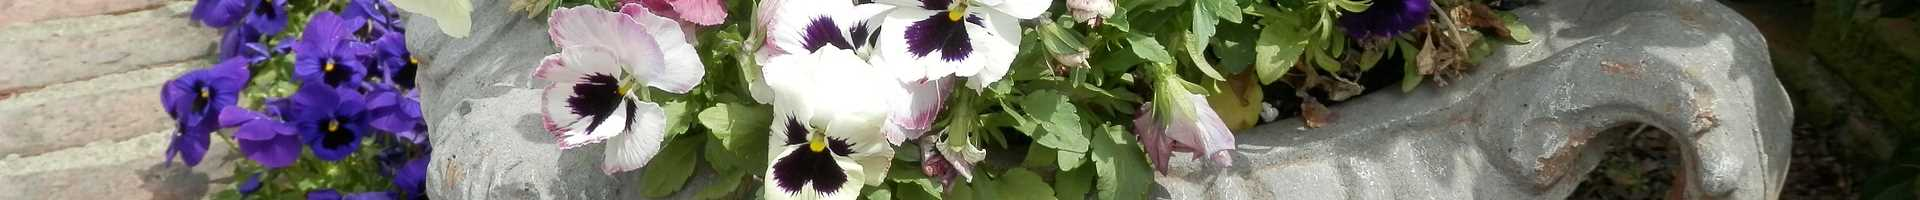 Pansies in an urn